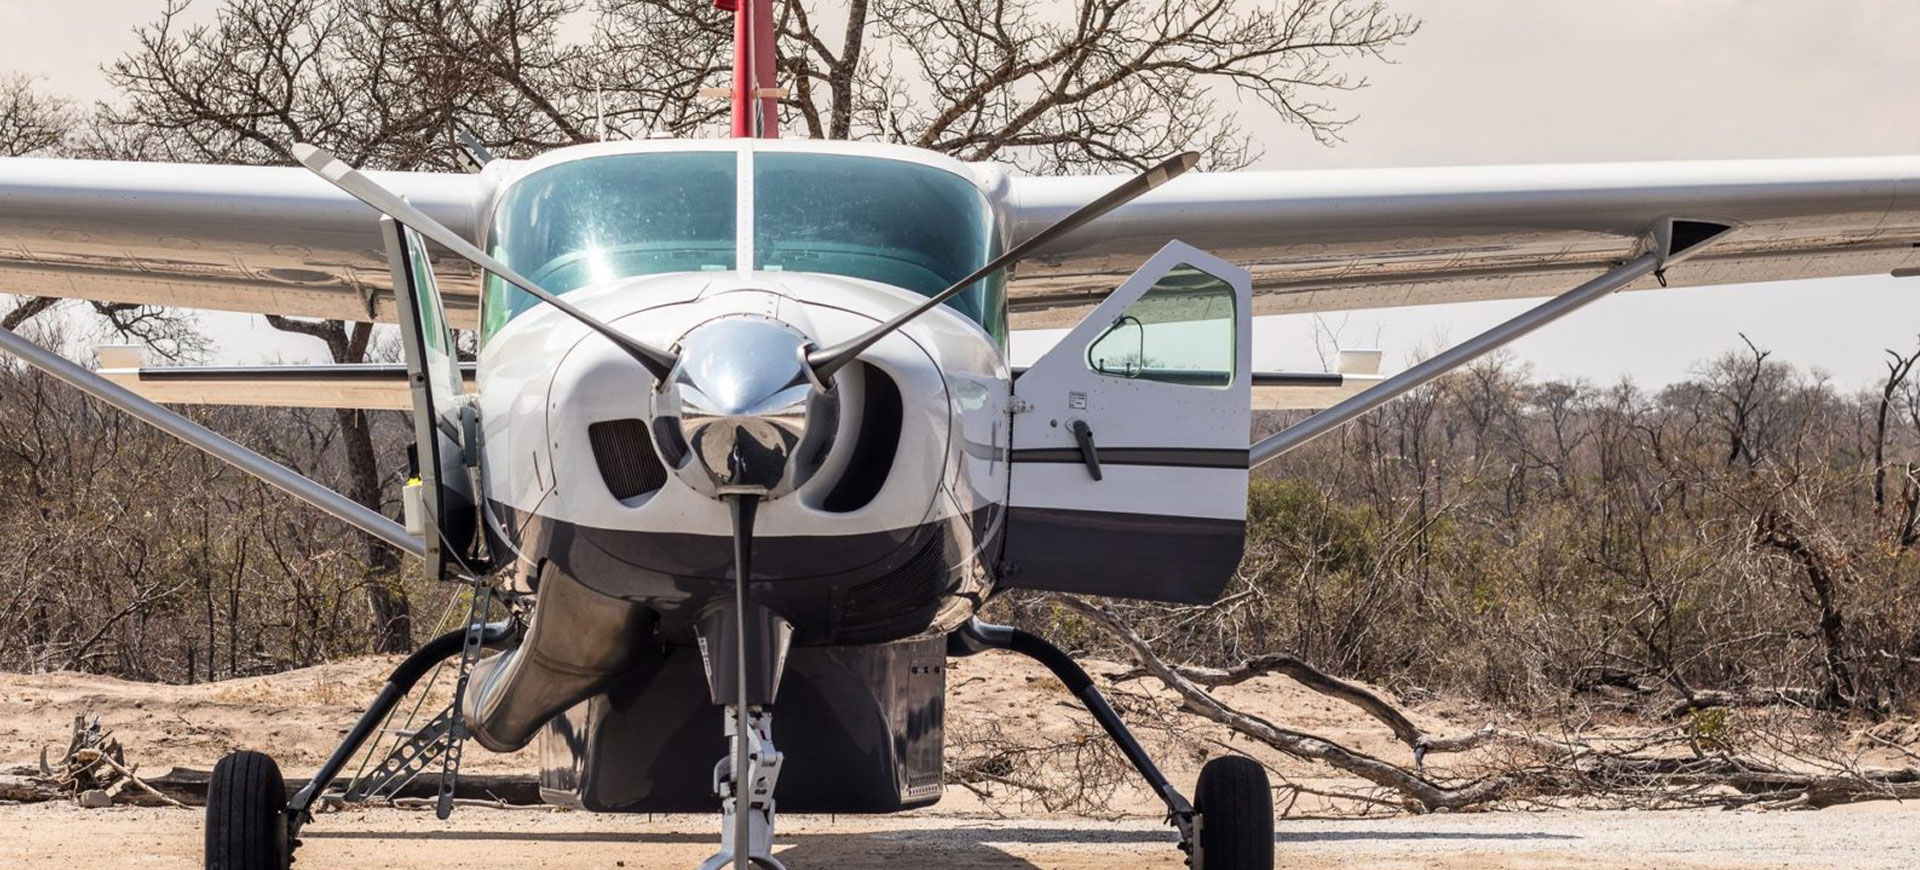 Conference Private Flights To Victoria Falls